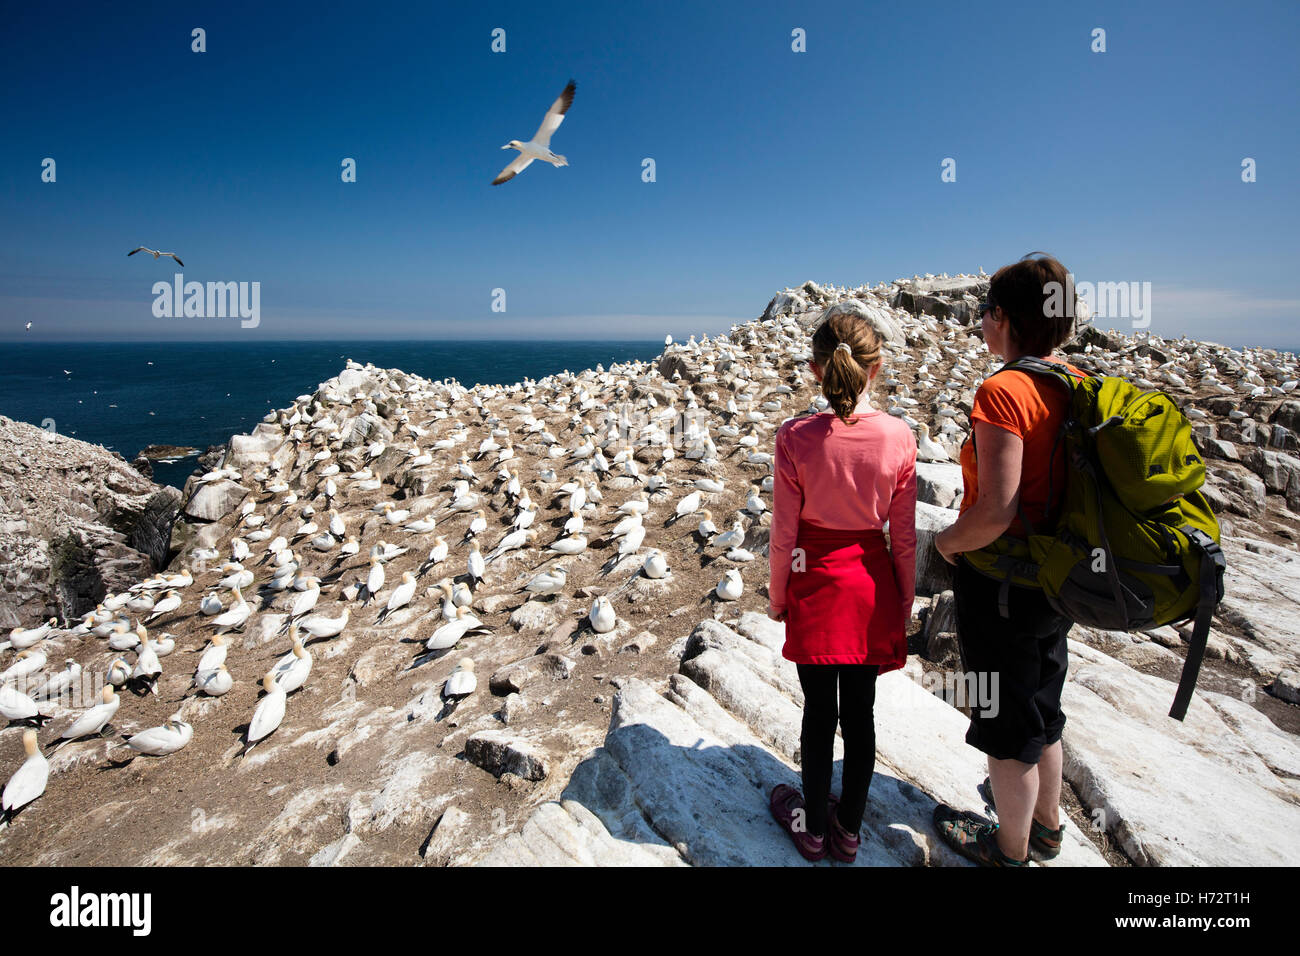 Visitors beside the gannet colony on Great Saltee Island. County Wexford, Ireland. - Stock Image